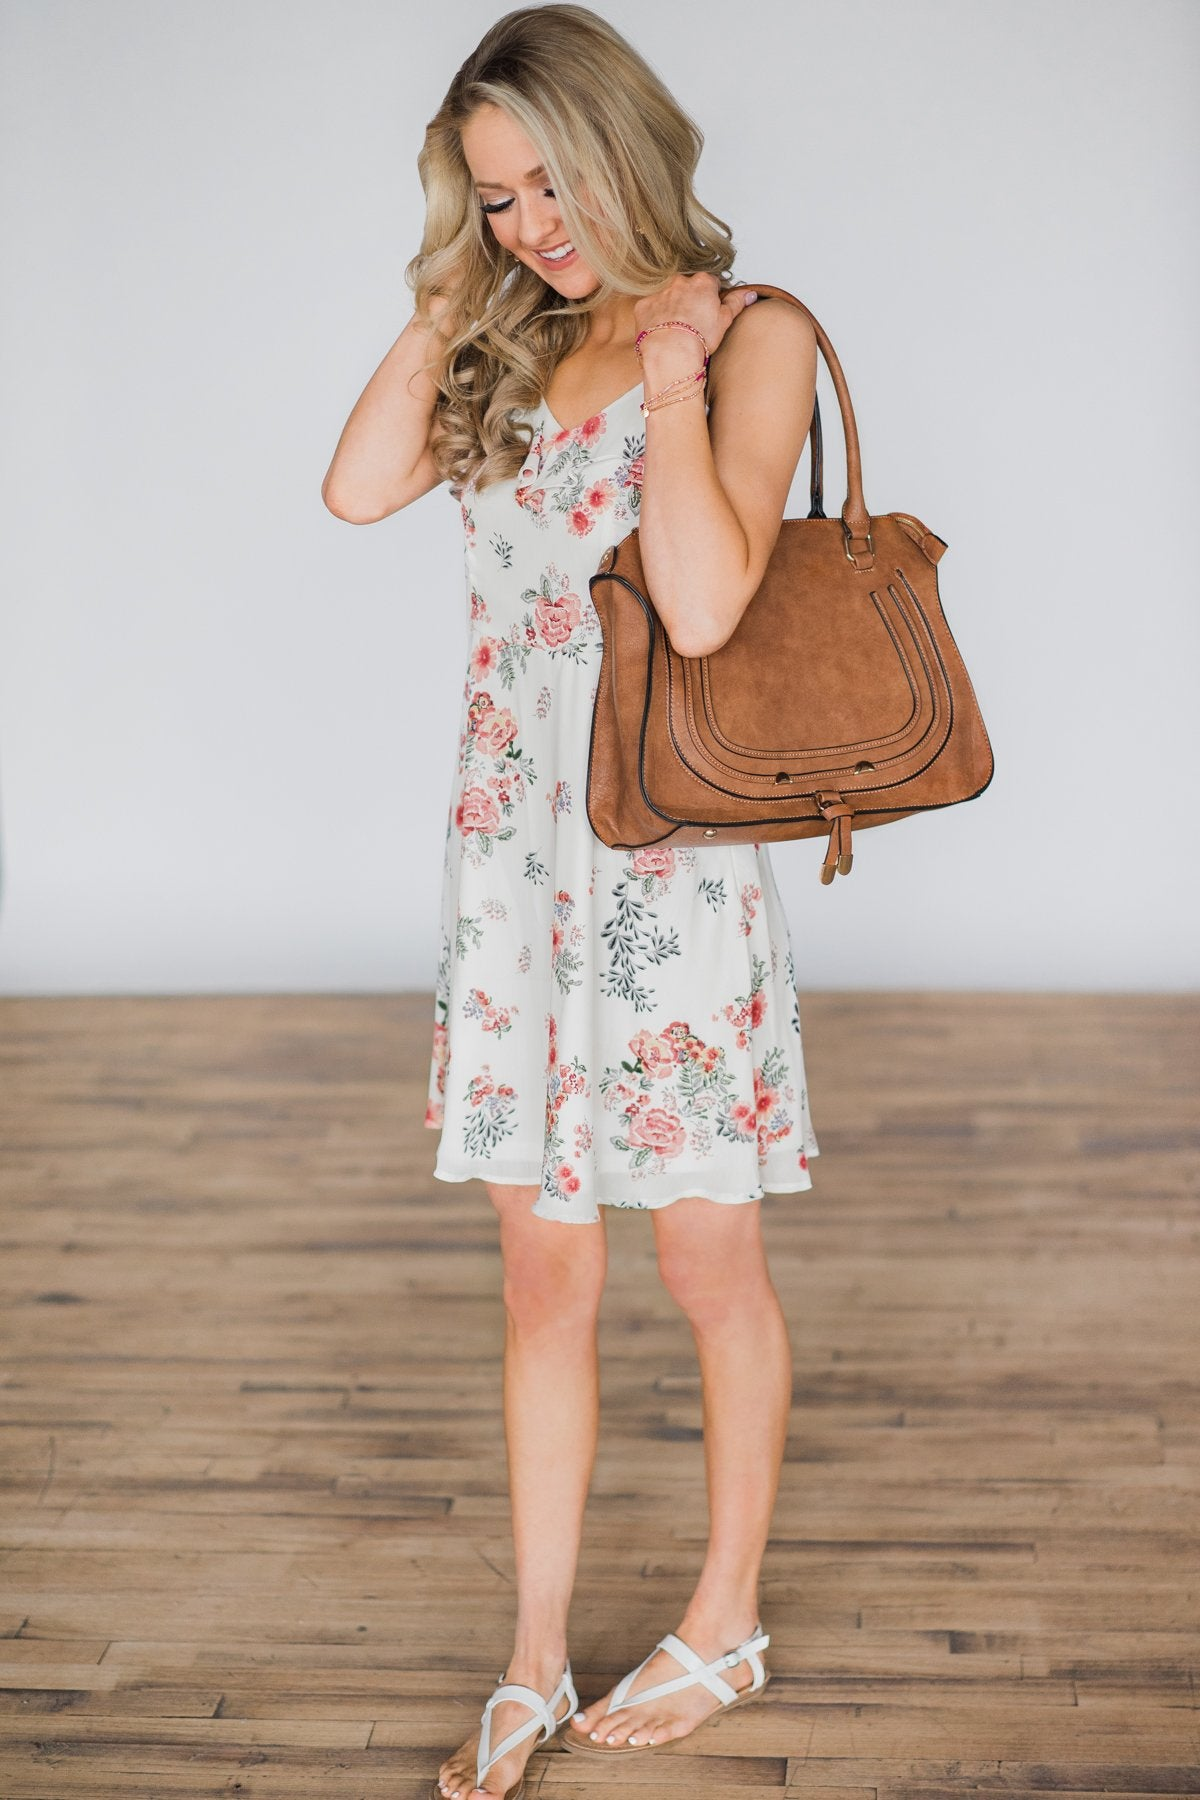 You Make Me Smile Floral Dress